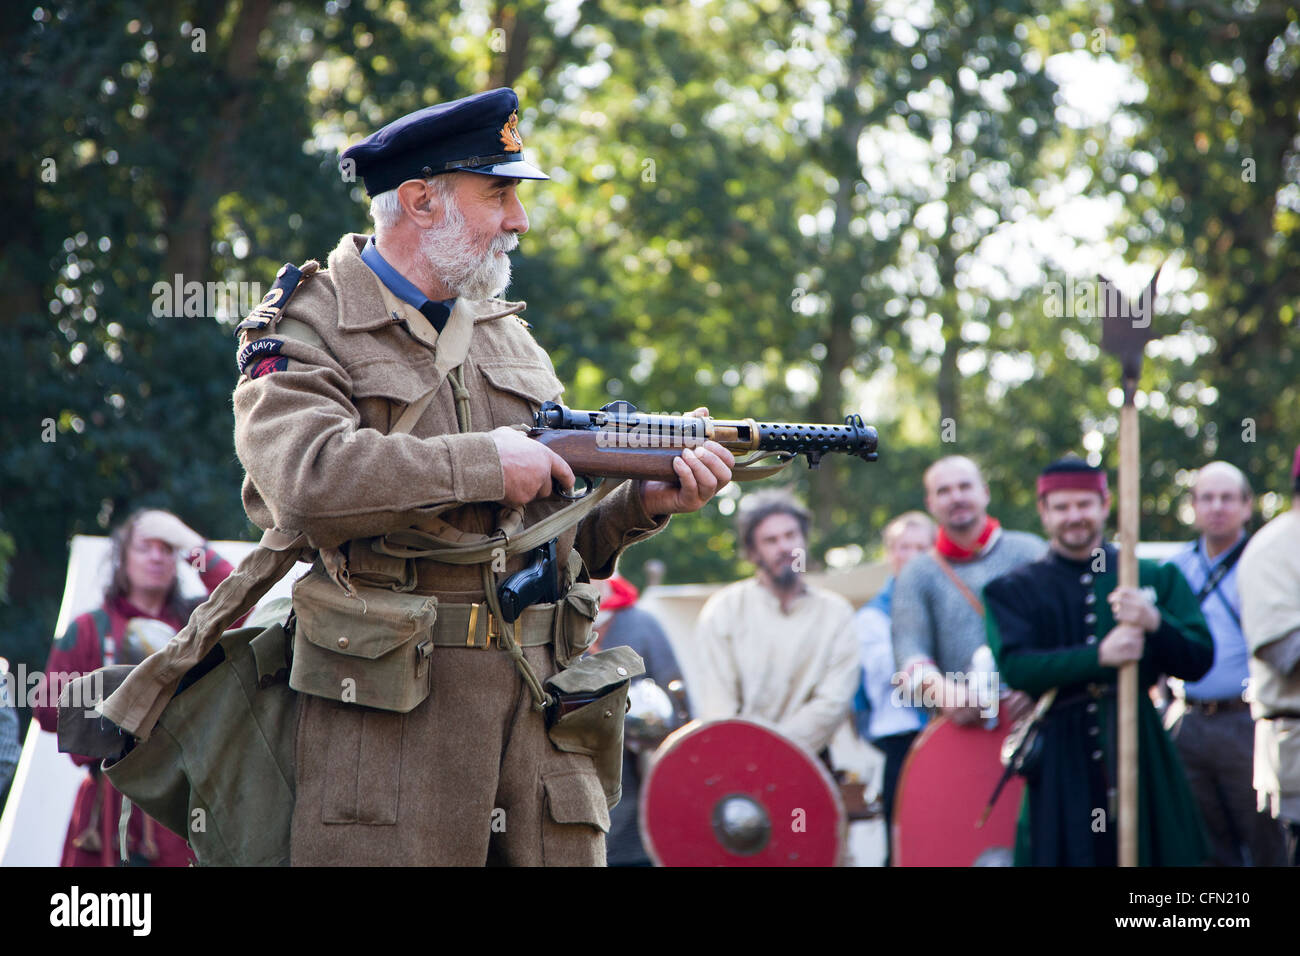 Demonstration of Lanchester submachine gun at living history